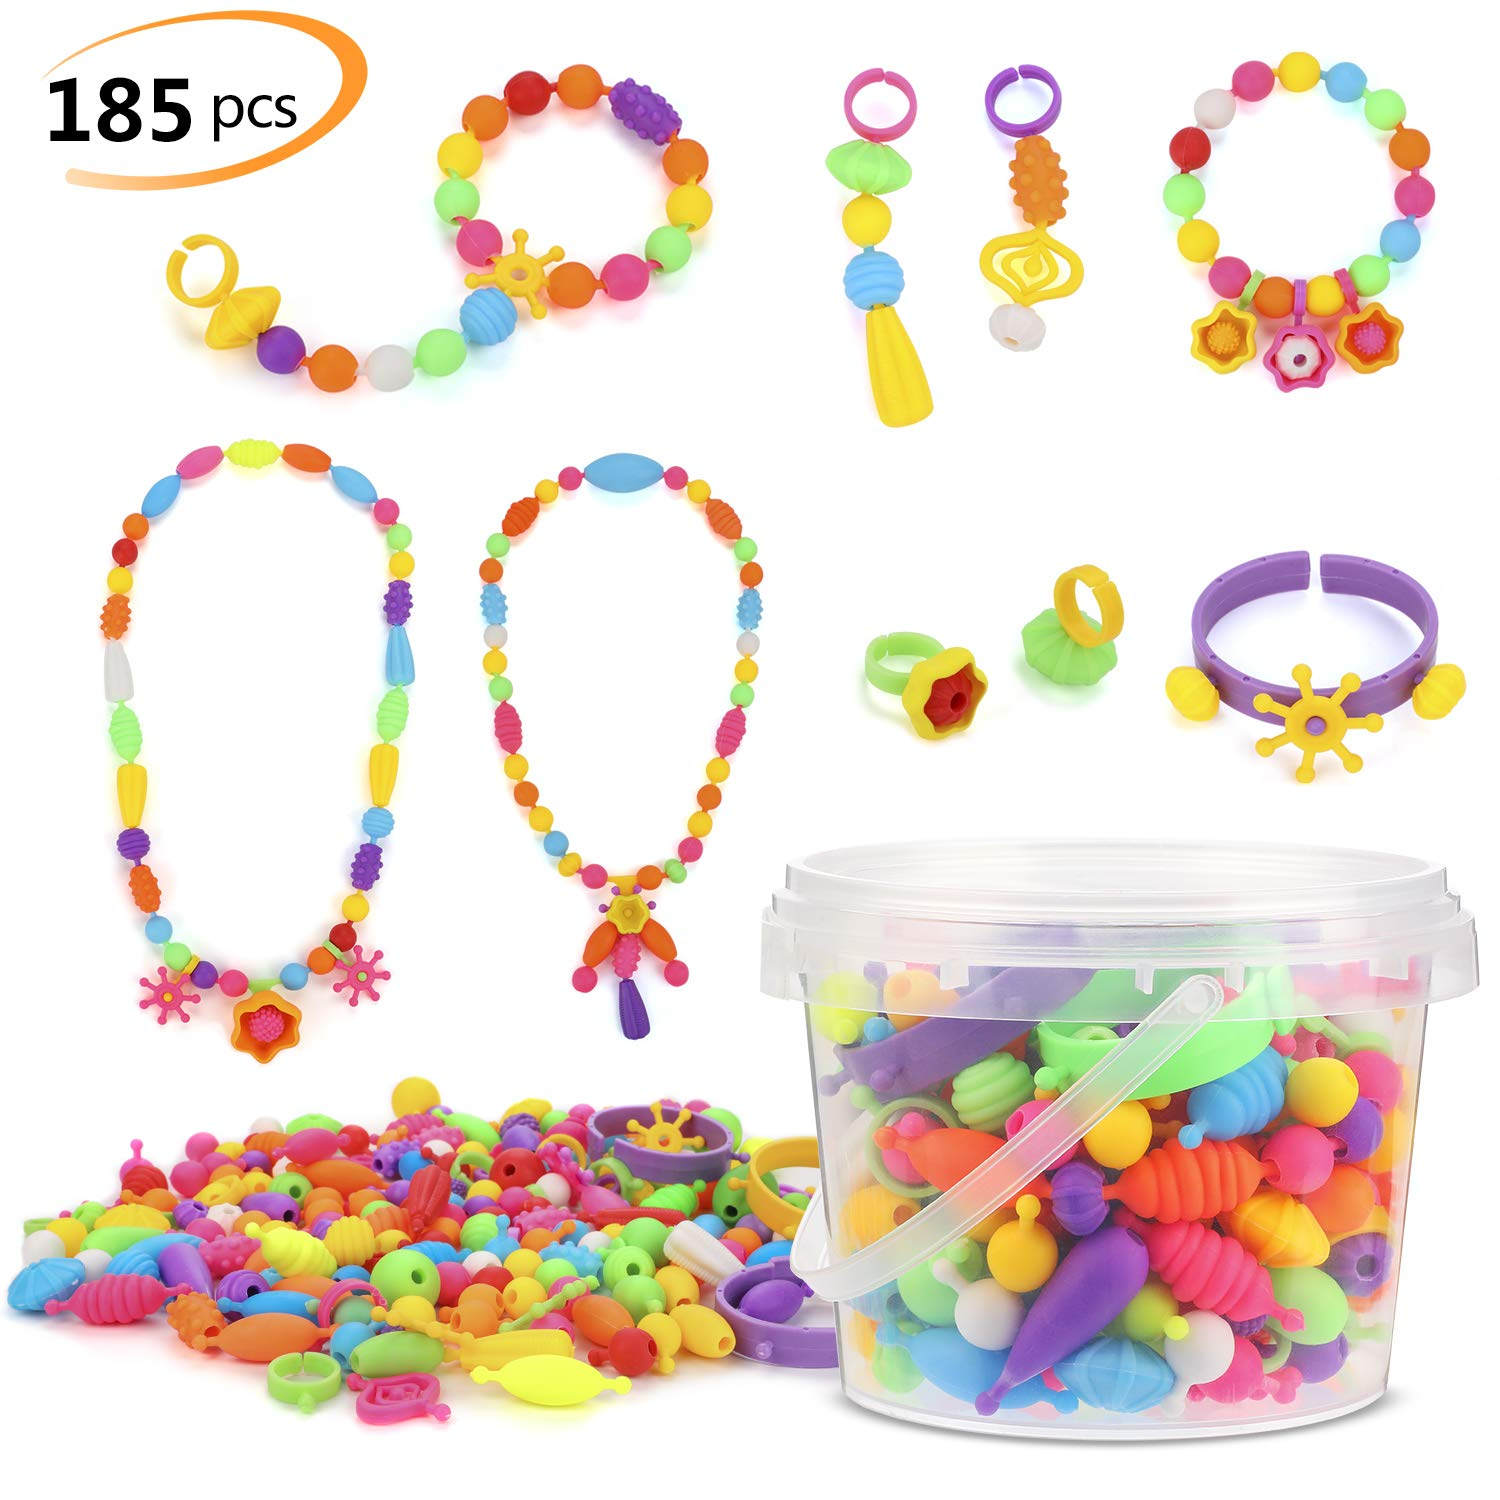 Phogary Pop Beads Set 185 PCS Pop Snap Beads Arts and Crafts Toys Gifts for Kids Age 4yr 8yr Jewellery Making Kit for 4 5 6 7 Year Old Girls Necklace and Bracelet and Ring Creativity DIY Set